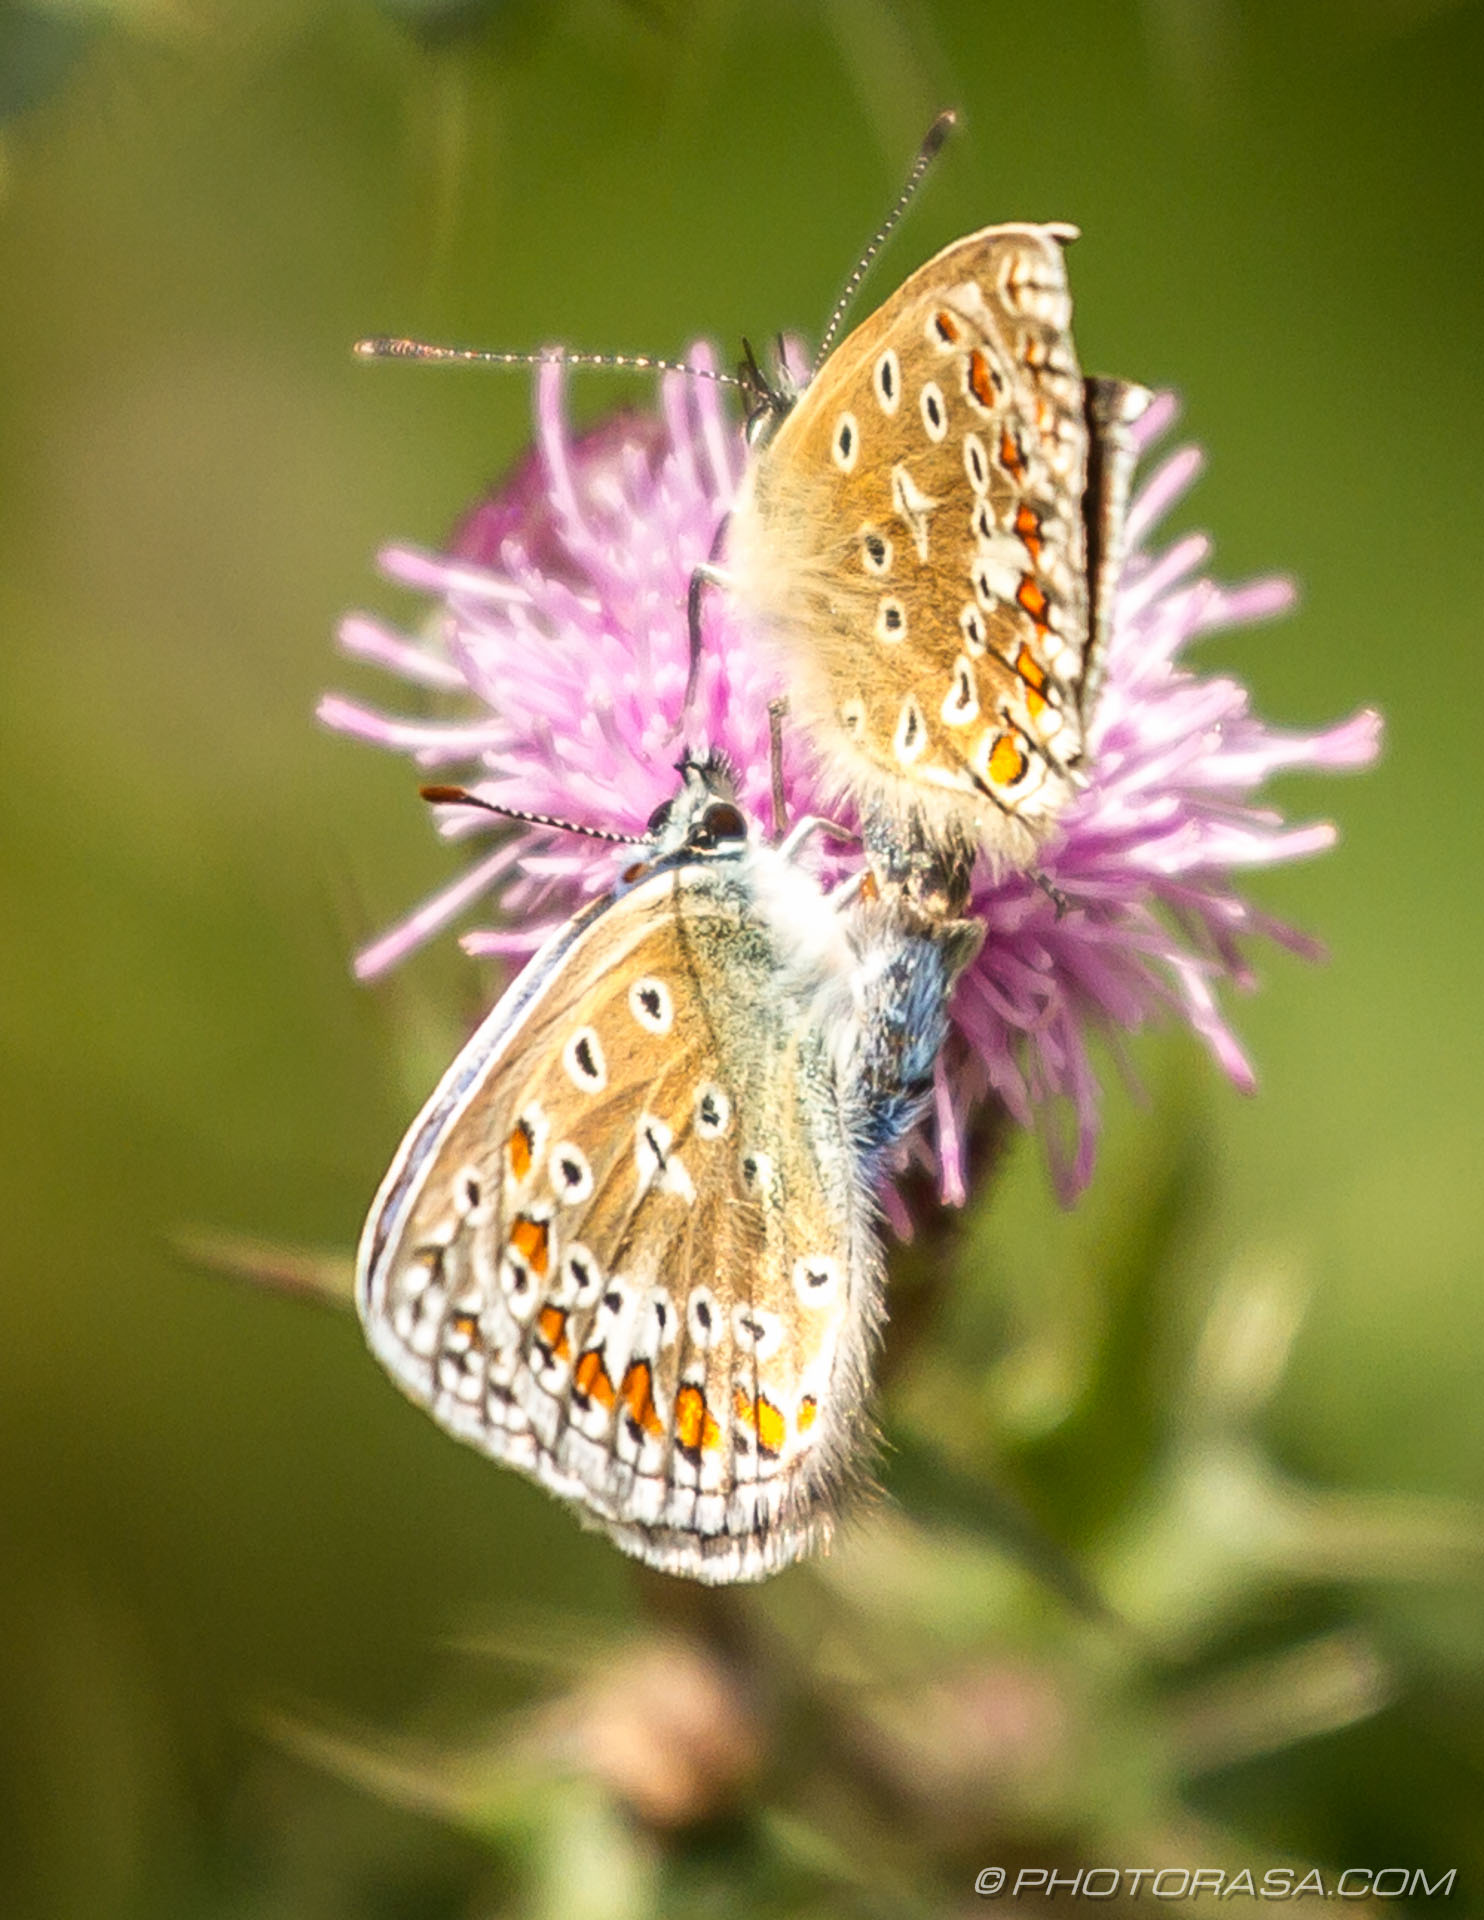 https://photorasa.com/common-blue-butterfly/two-common-blues/